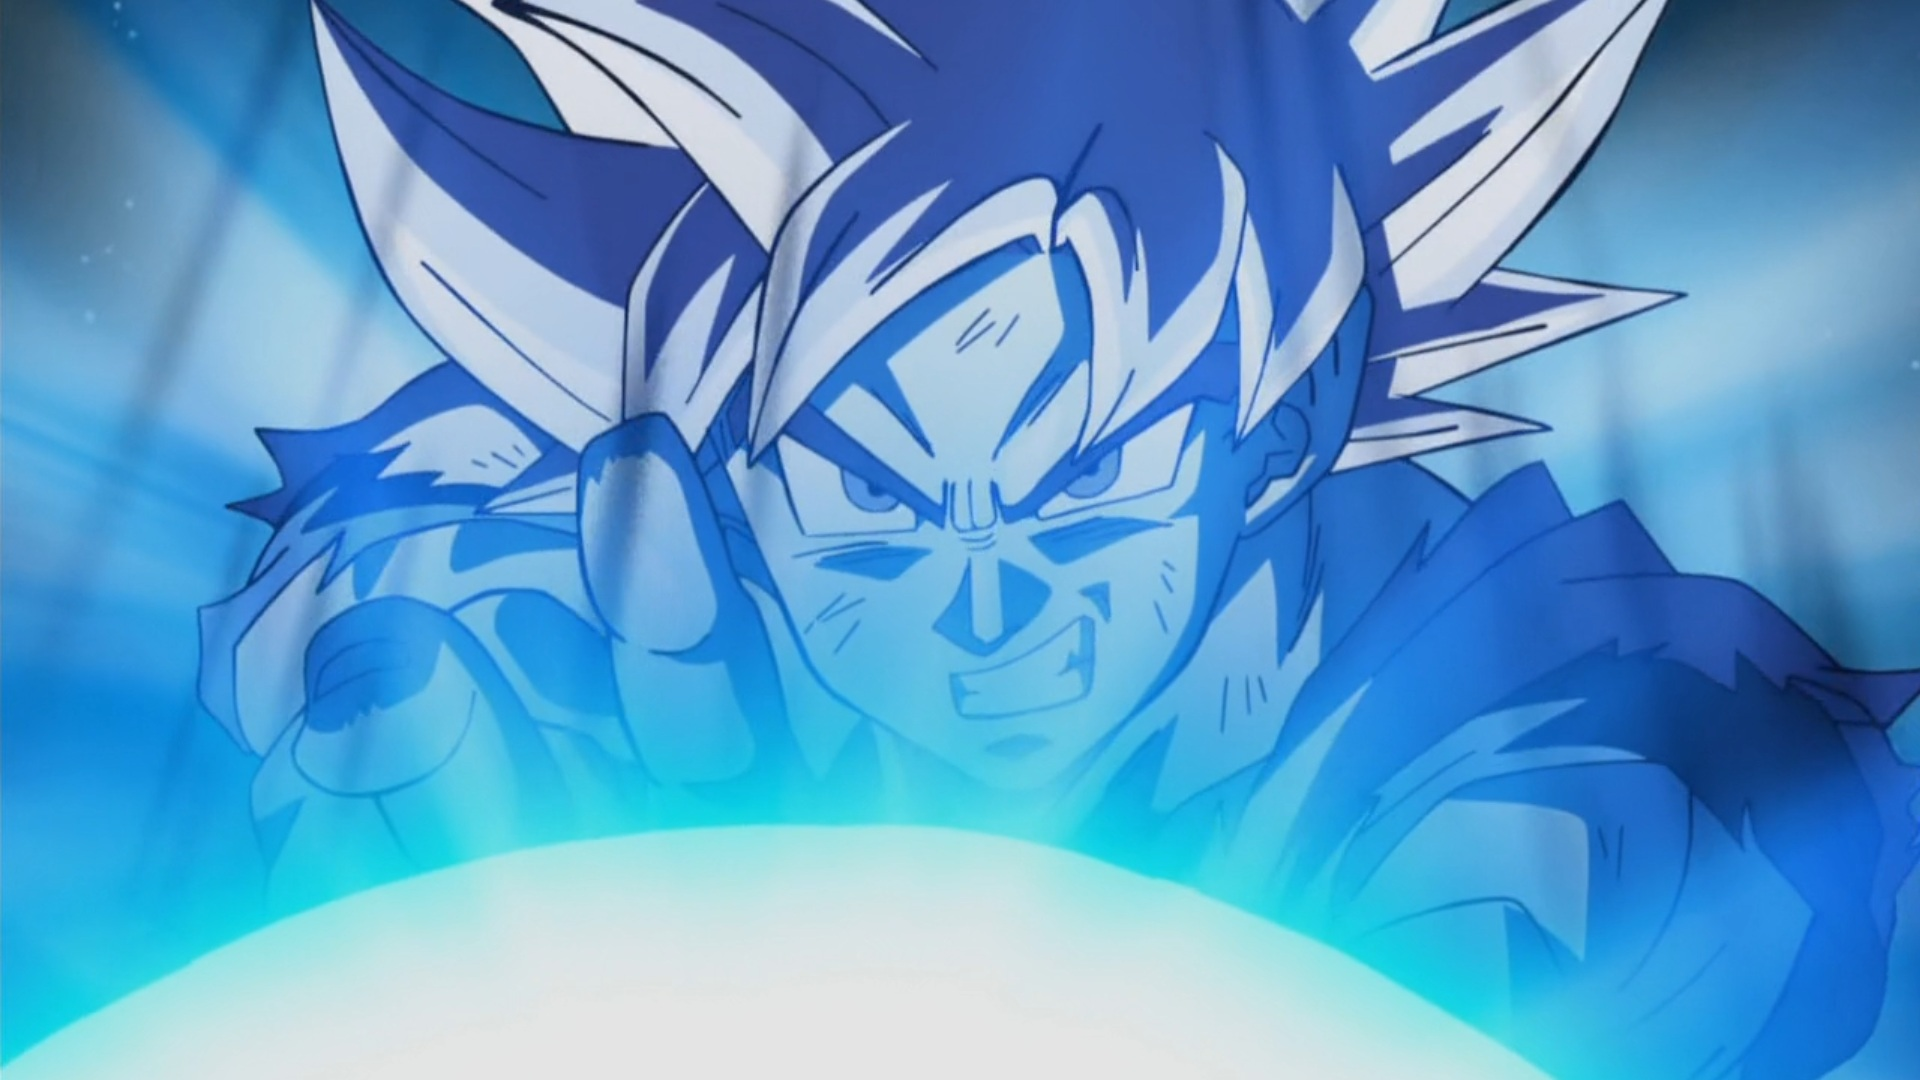 http://vignette4.wikia.nocookie.net/dragonball/images/f/fd/Cxvxc.jpg/revision/latest?cb=20151004115606